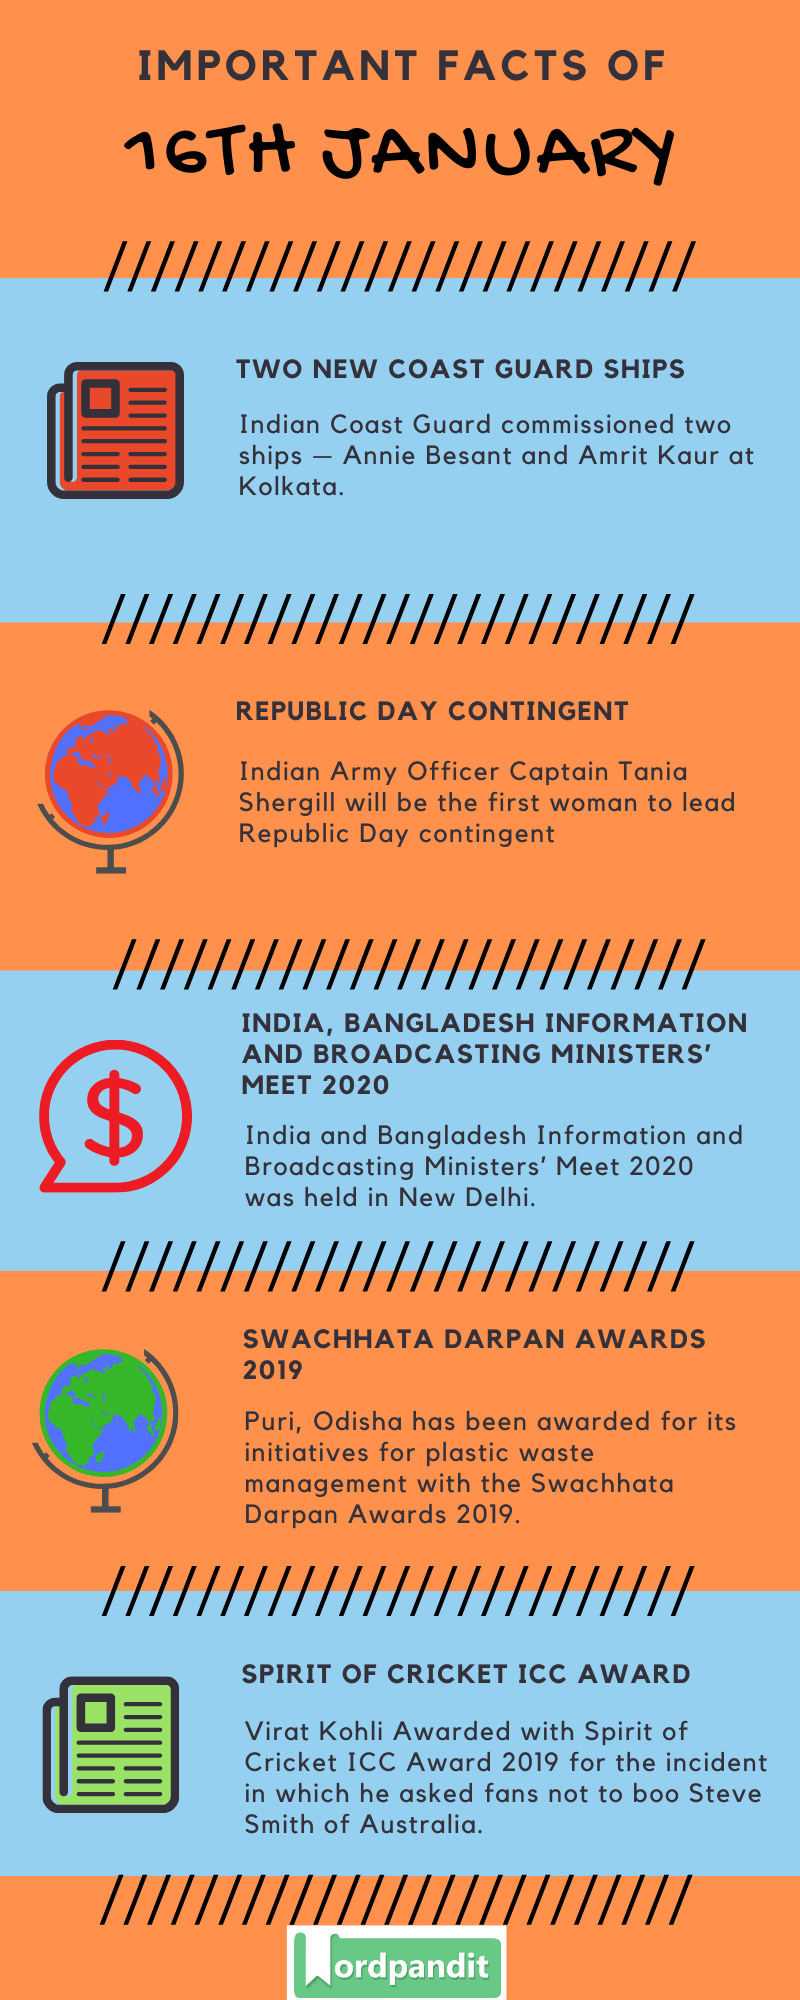 Daily Current Affairs 16 January 2020 Current Affairs Quiz 16 January 2020 Current Affairs Infographic